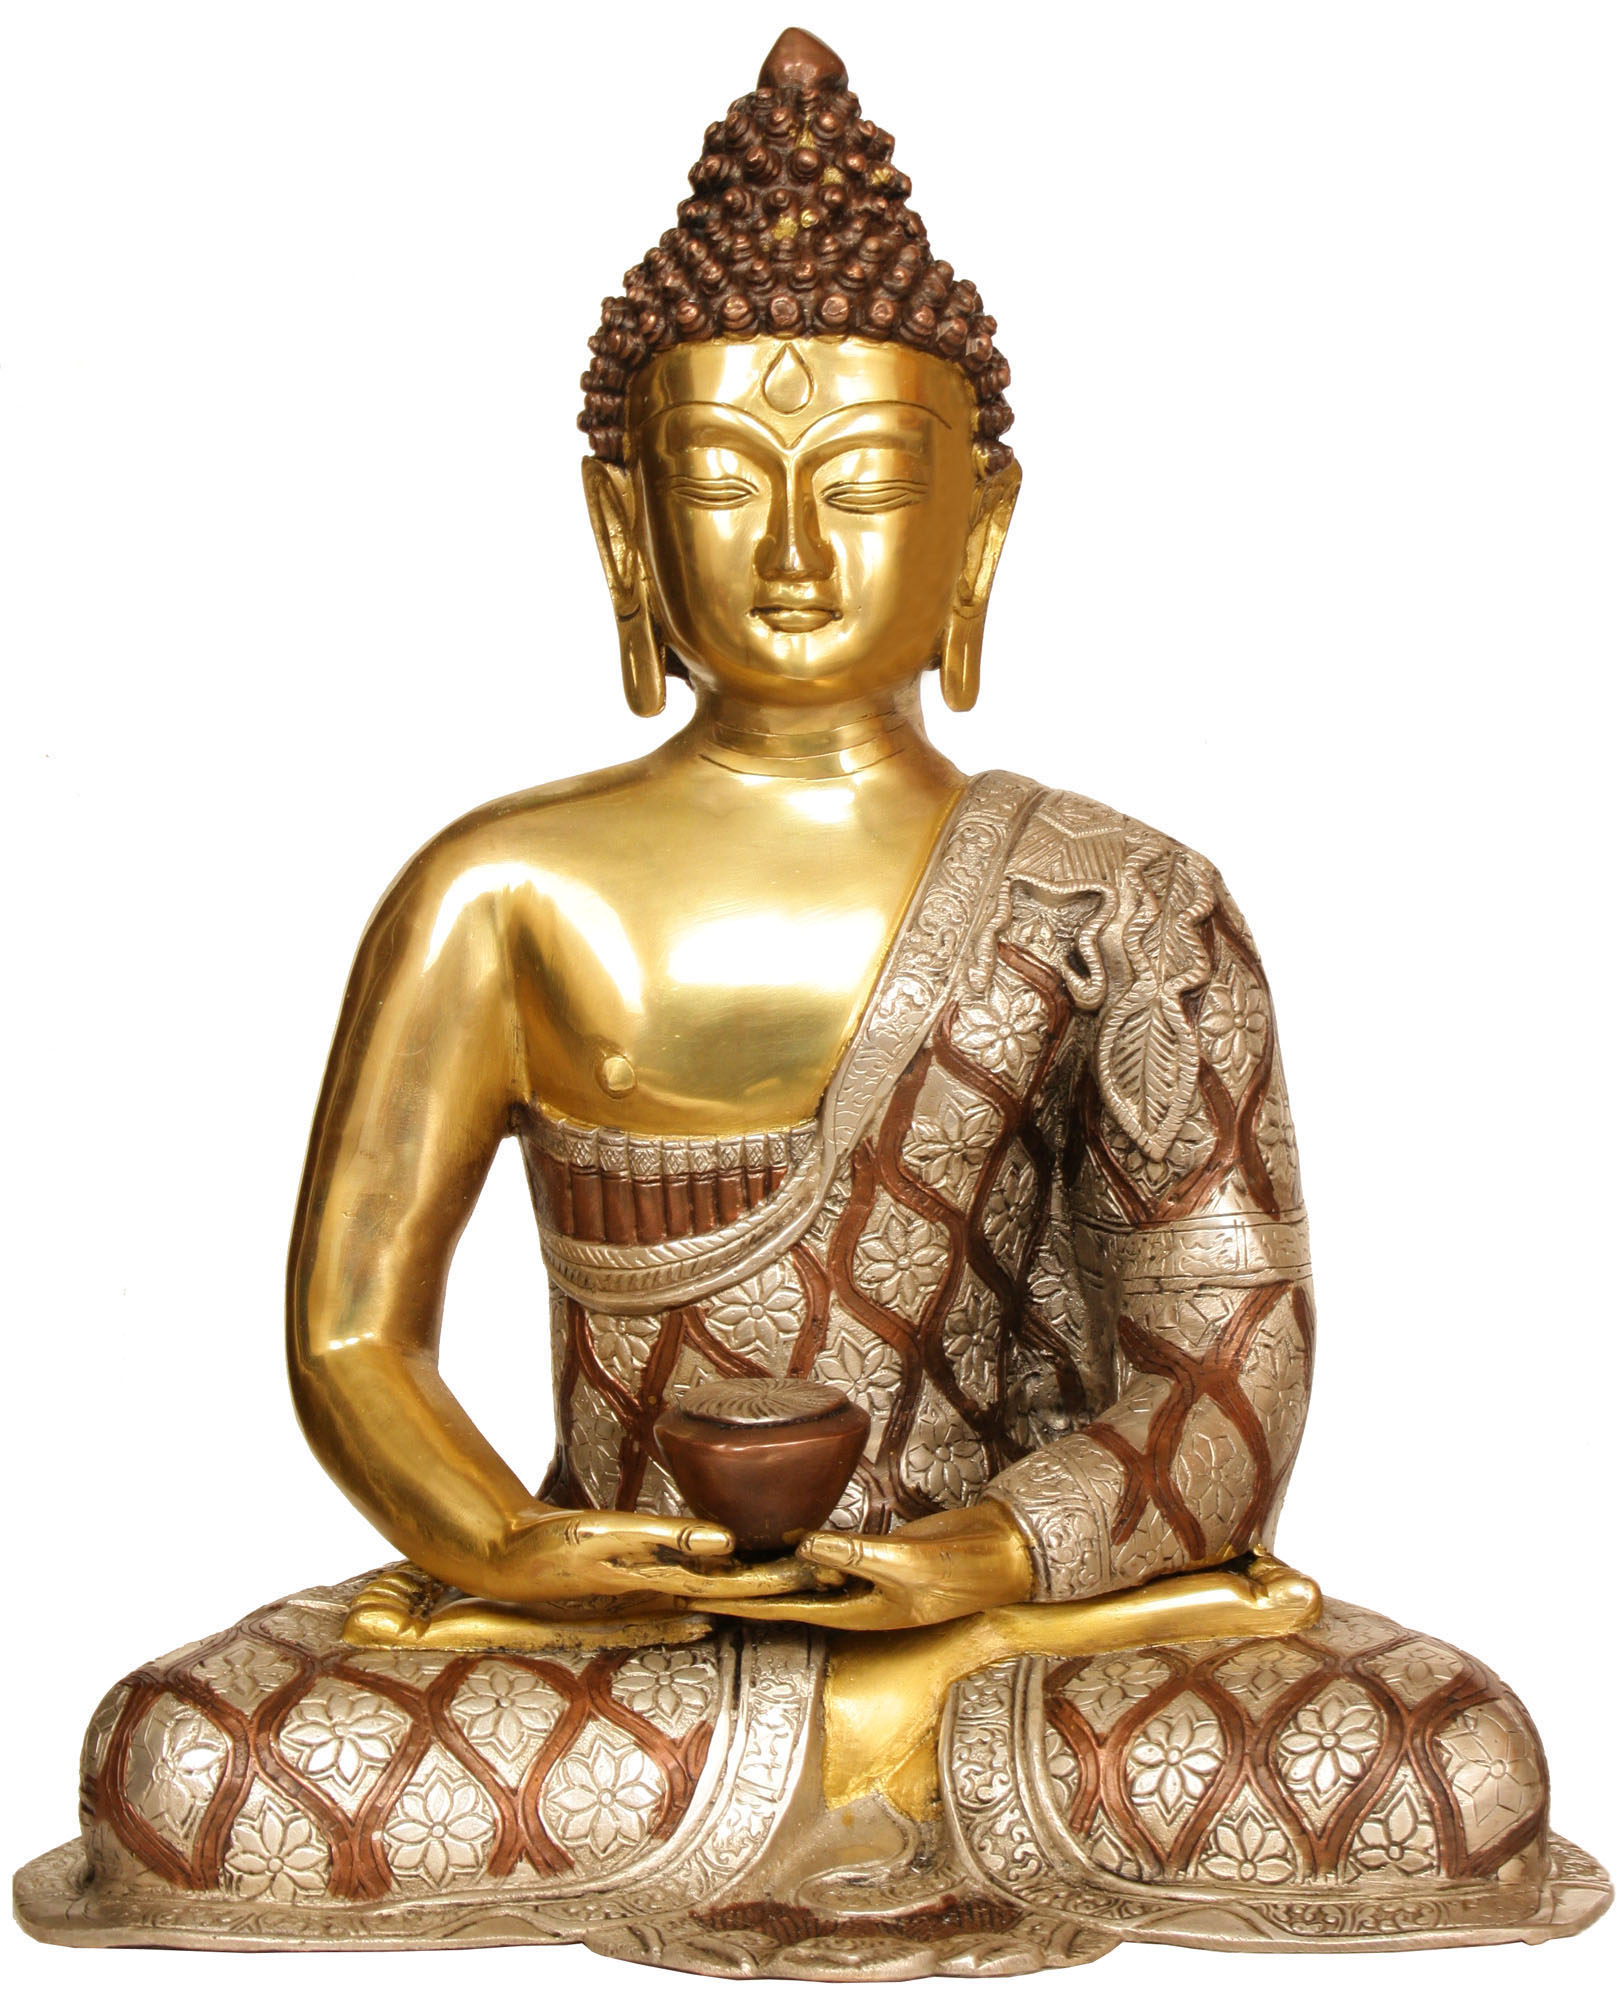 Lord Buddha In Dhyana Mudra Robes Decorated With Lotus Flowers